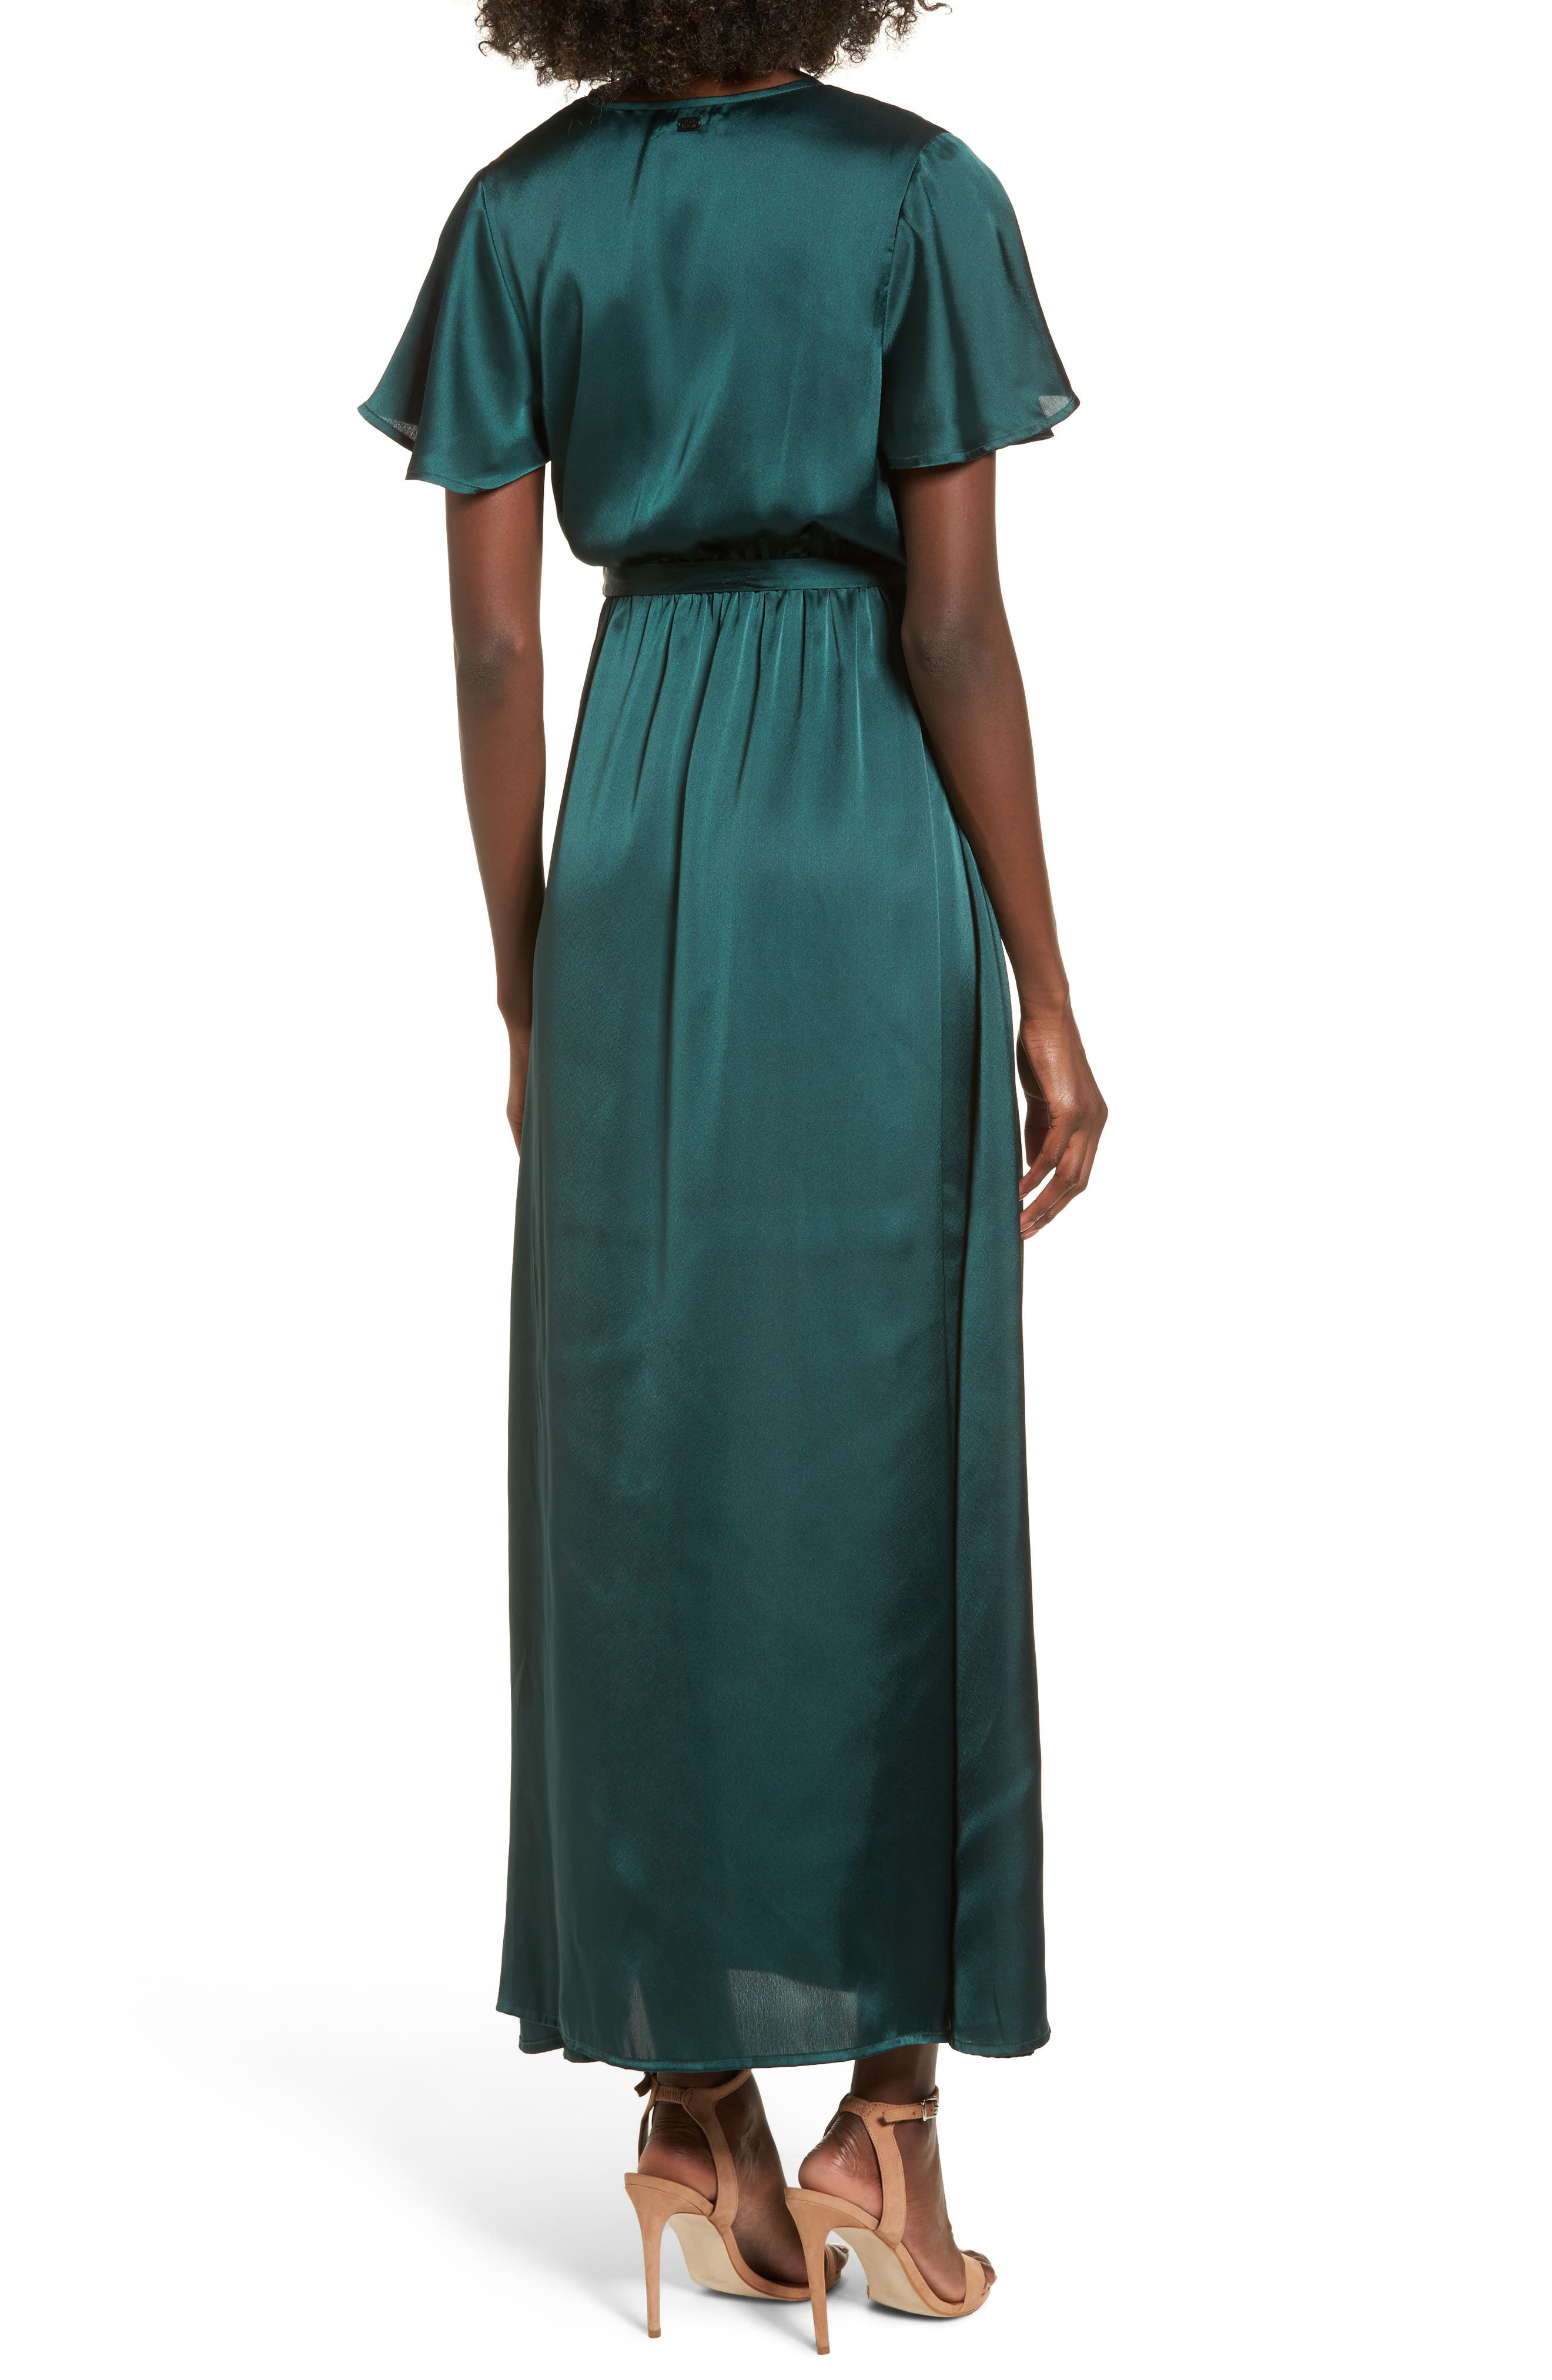 EZ Days Satin Wrap Maxi Dress,                             Alternate thumbnail 2, color,                             300